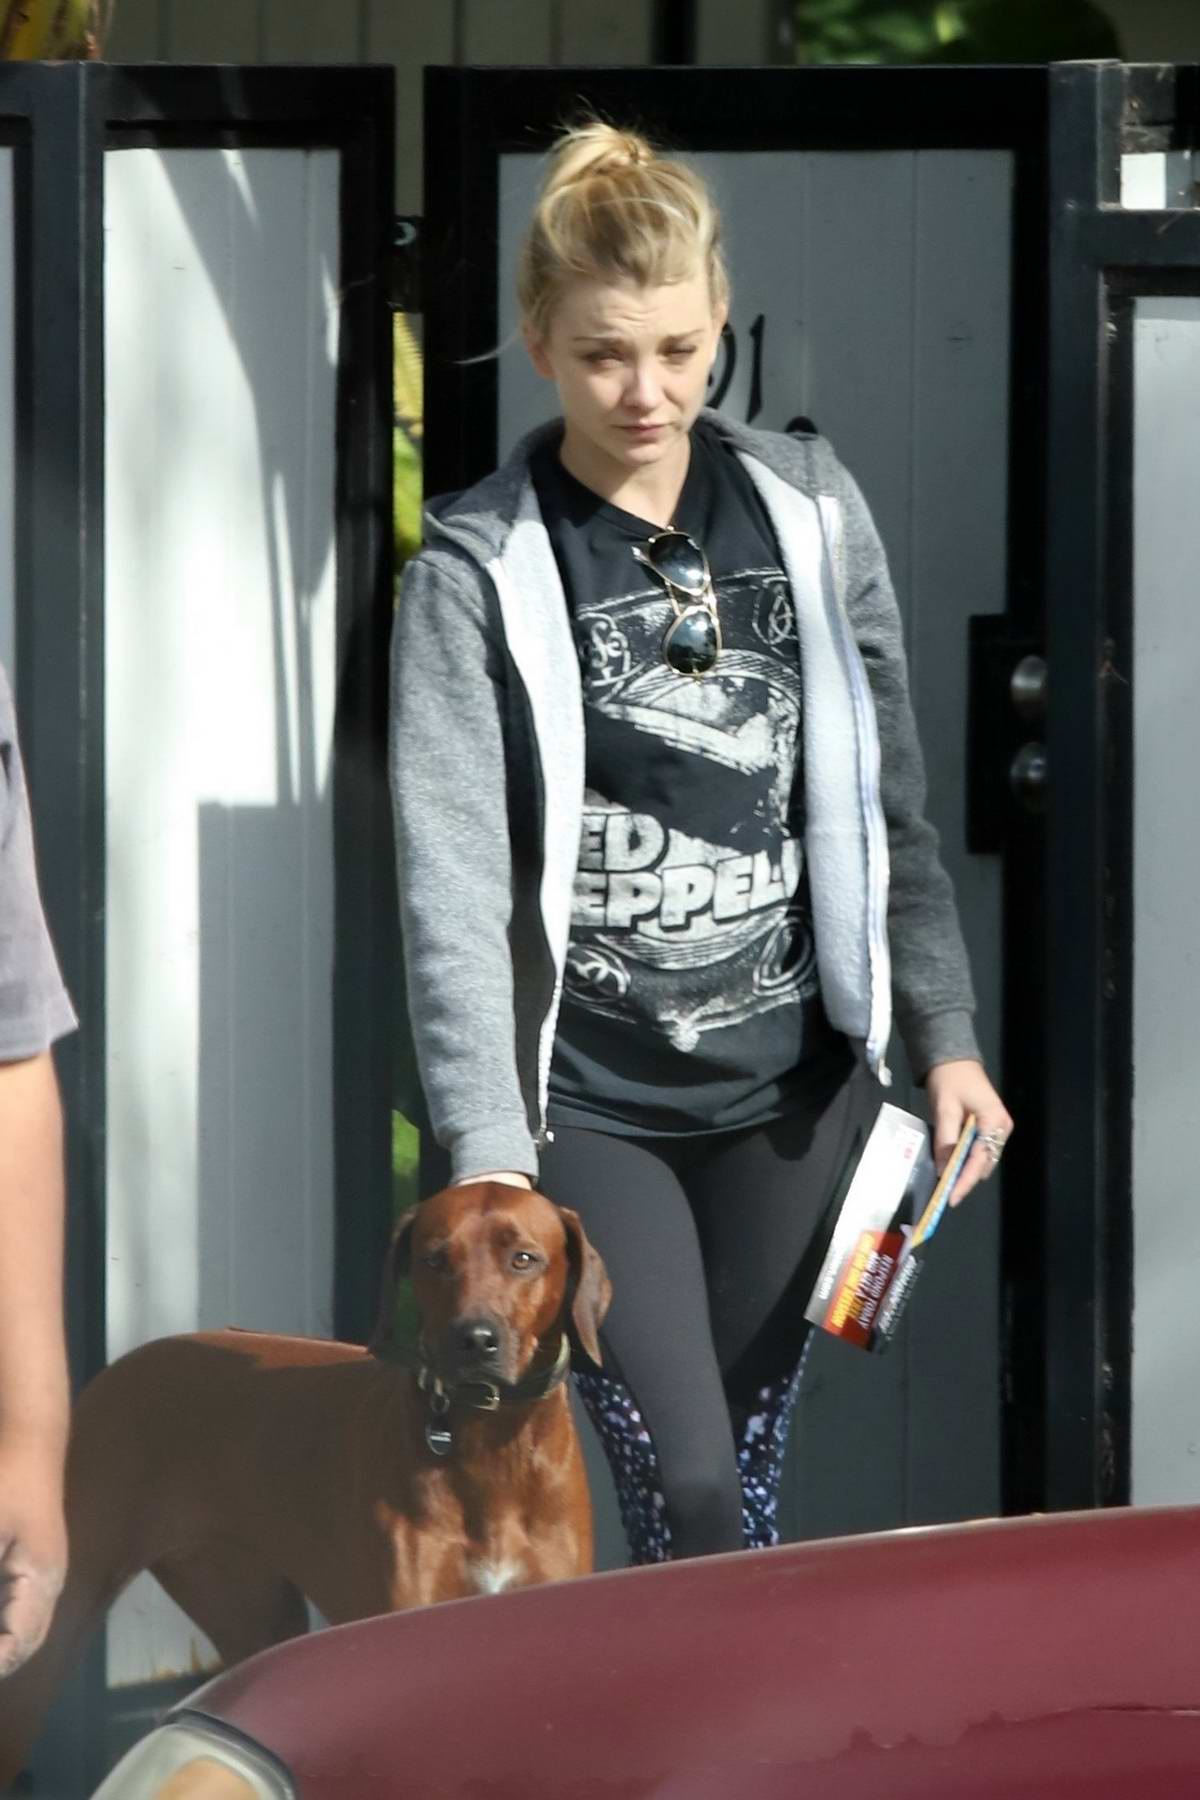 Natalie Dormer dresses down in a cozy jacket and leggings as she takes her dog out for a walk in Los Angeles